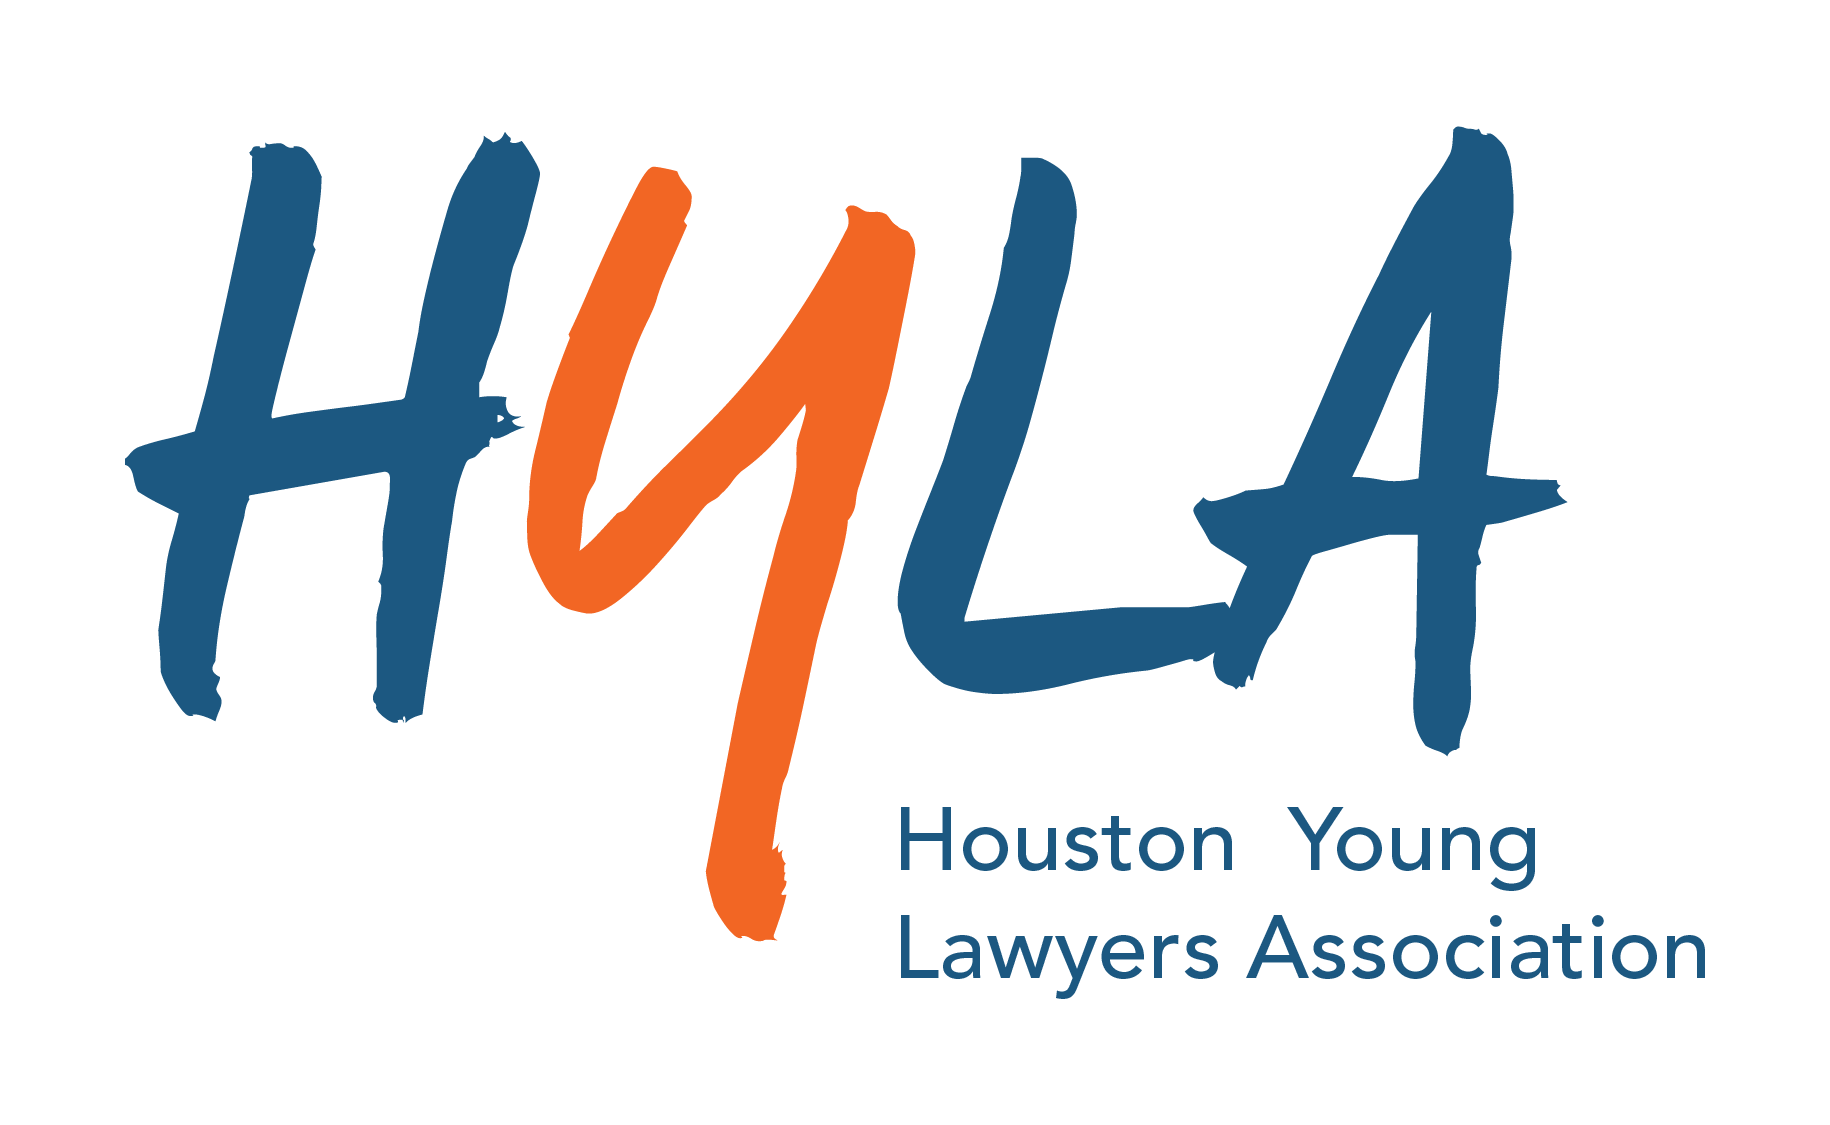 Houston Young Lawyers Association